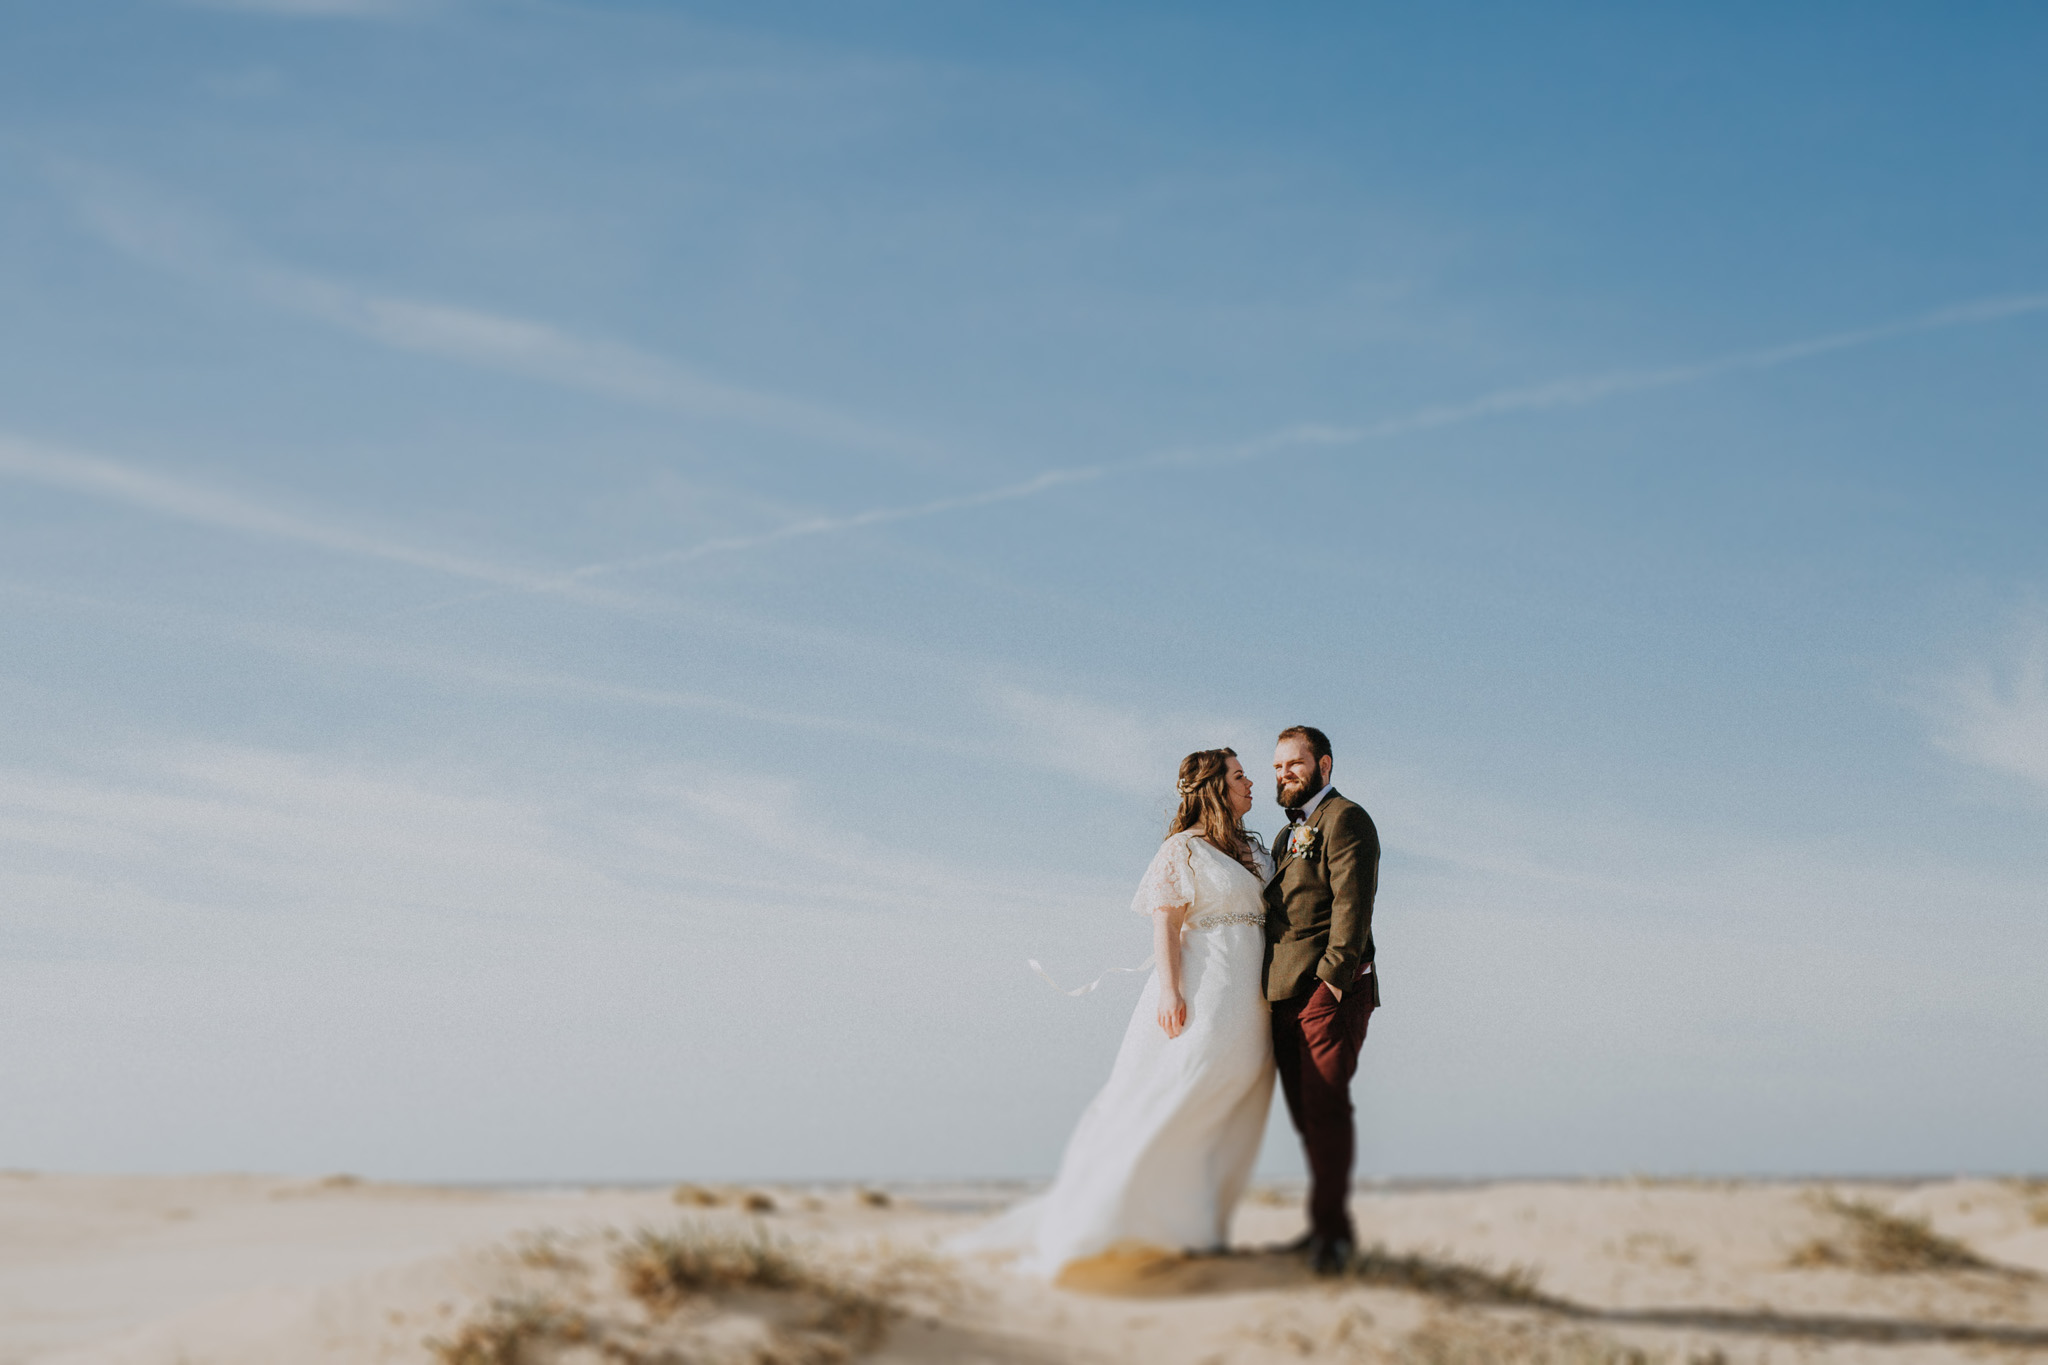 A bride and groom stand together on the sand at Wells next the sea